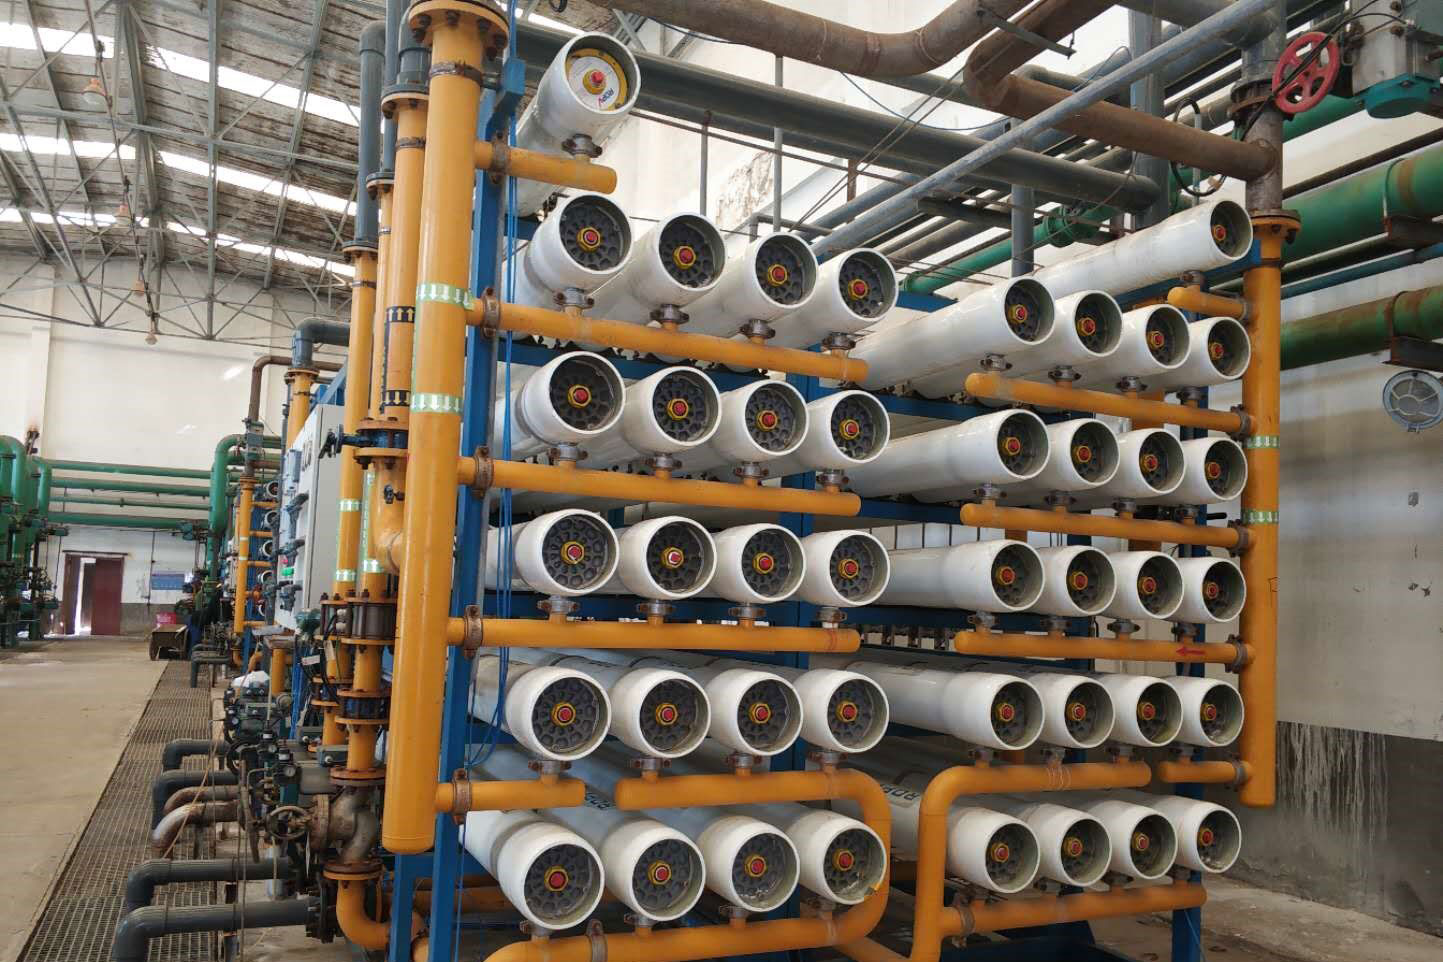 Waste water reuse project in Australia